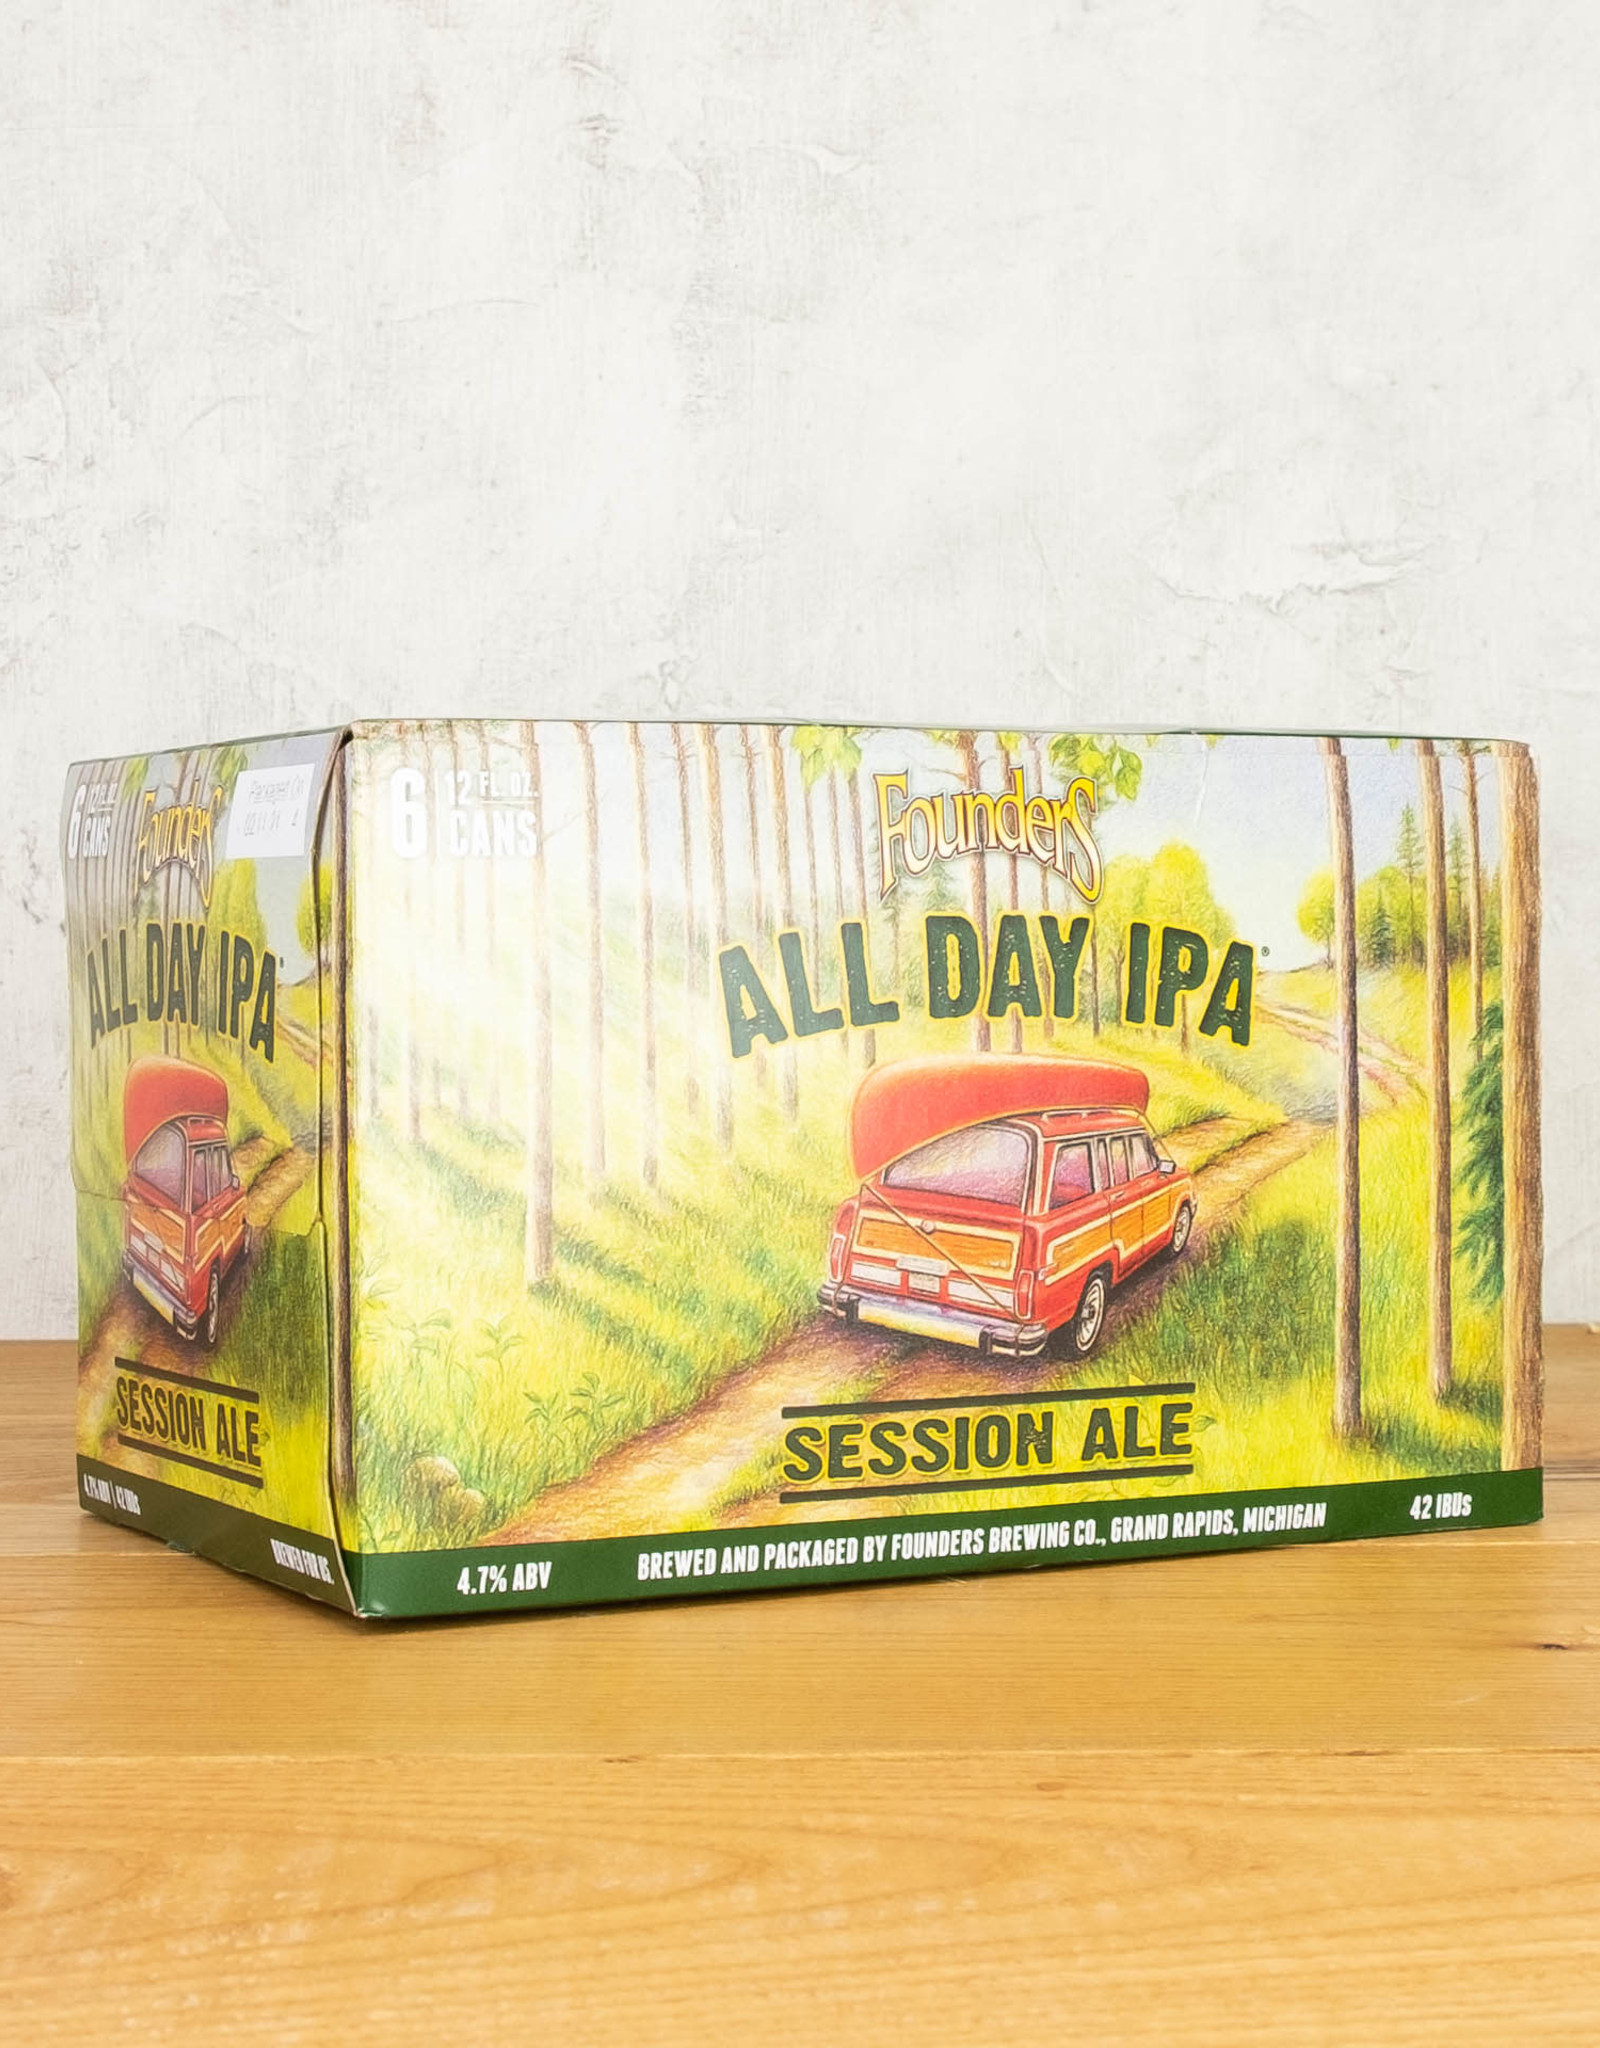 Founders All Day IPA 6pk Cans